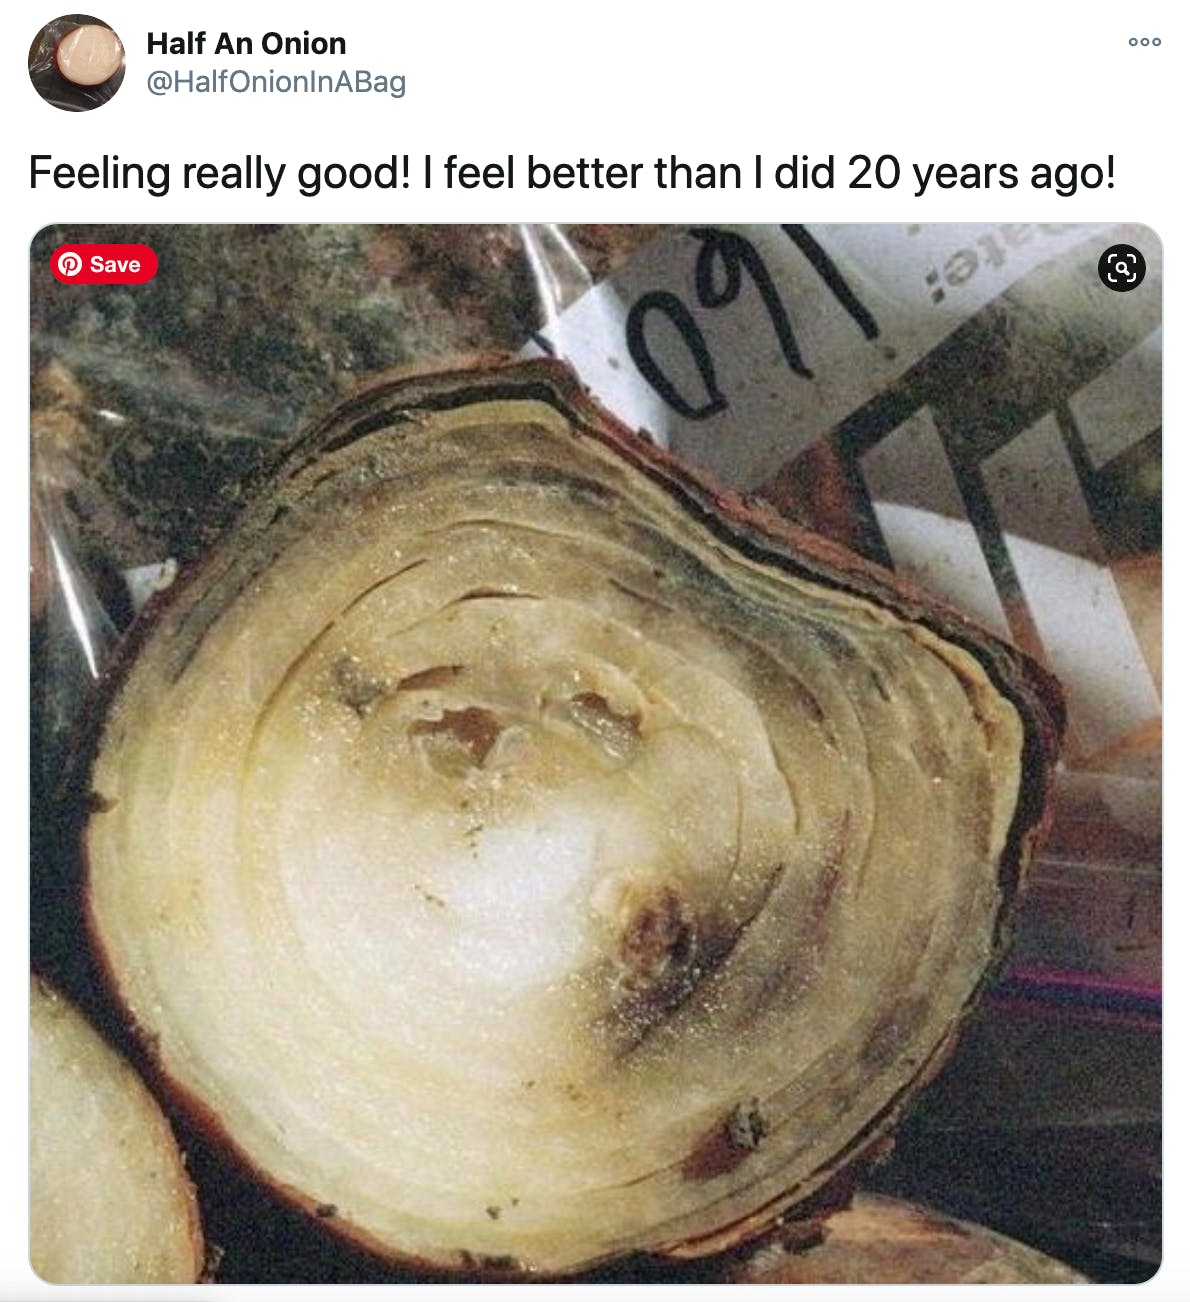 """""""Feeling really good! I feel better than I did 20 years ago!""""  picture of a rotting onion"""